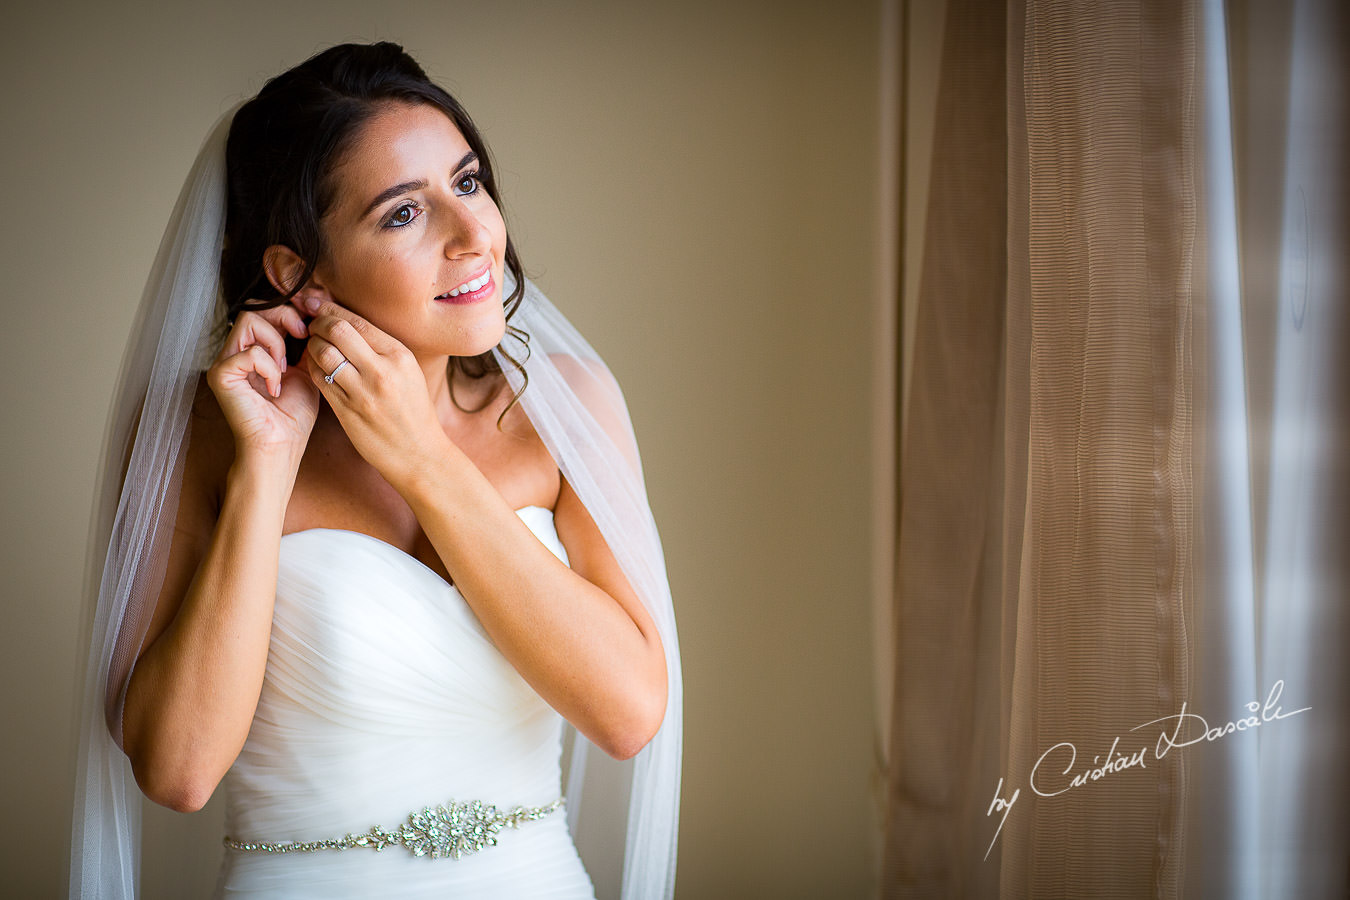 The bride getting ready during a Beautiful Wedding at Elias Beach Hotel captured by Cyprus Photographer Cristian Dascalu.